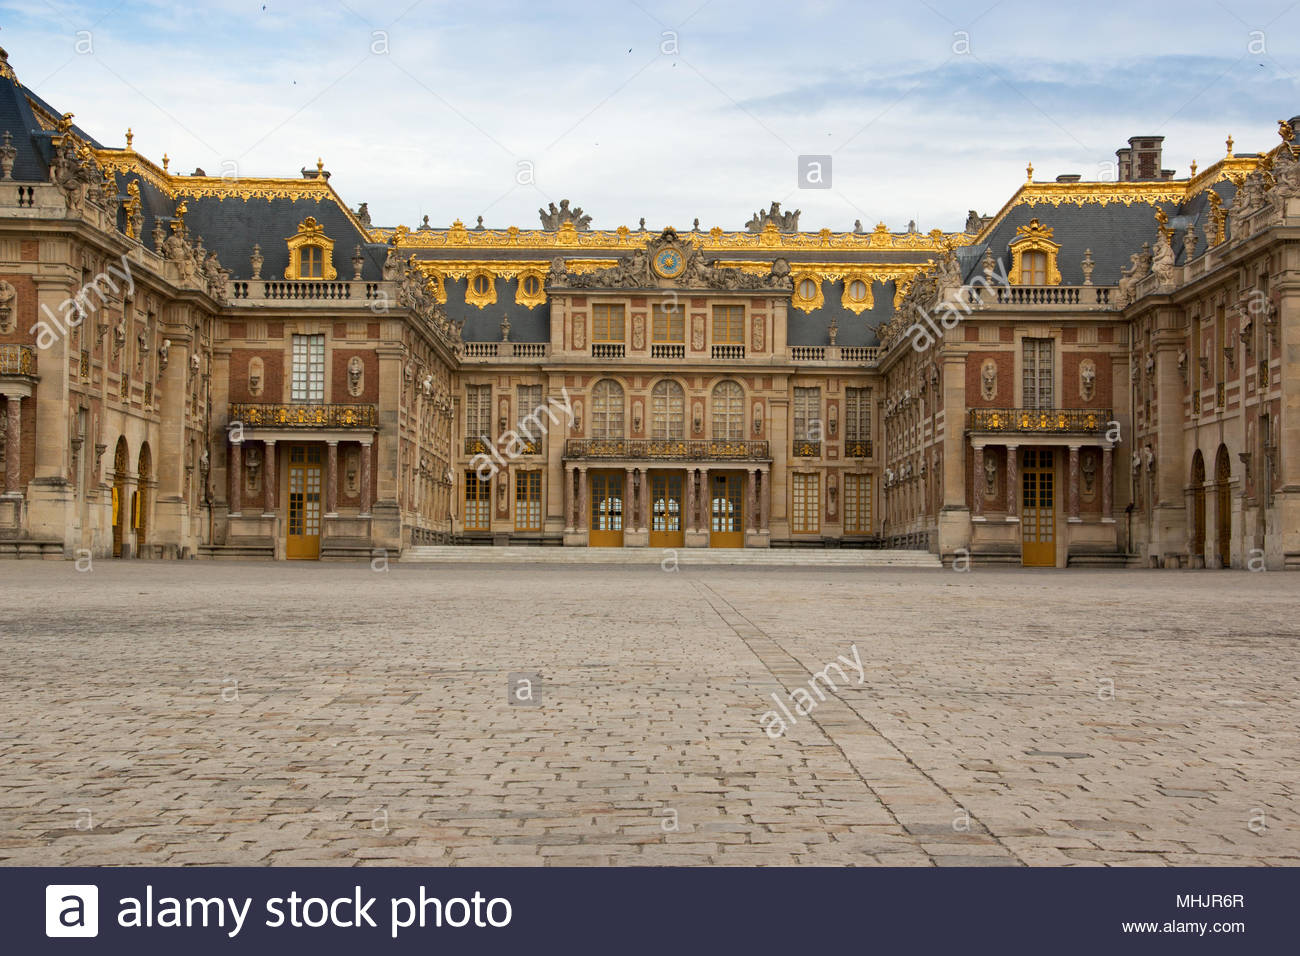 Versailles, France, 2 August 2017. View of the palace of Versailles from the main courtyard. - Stock Image